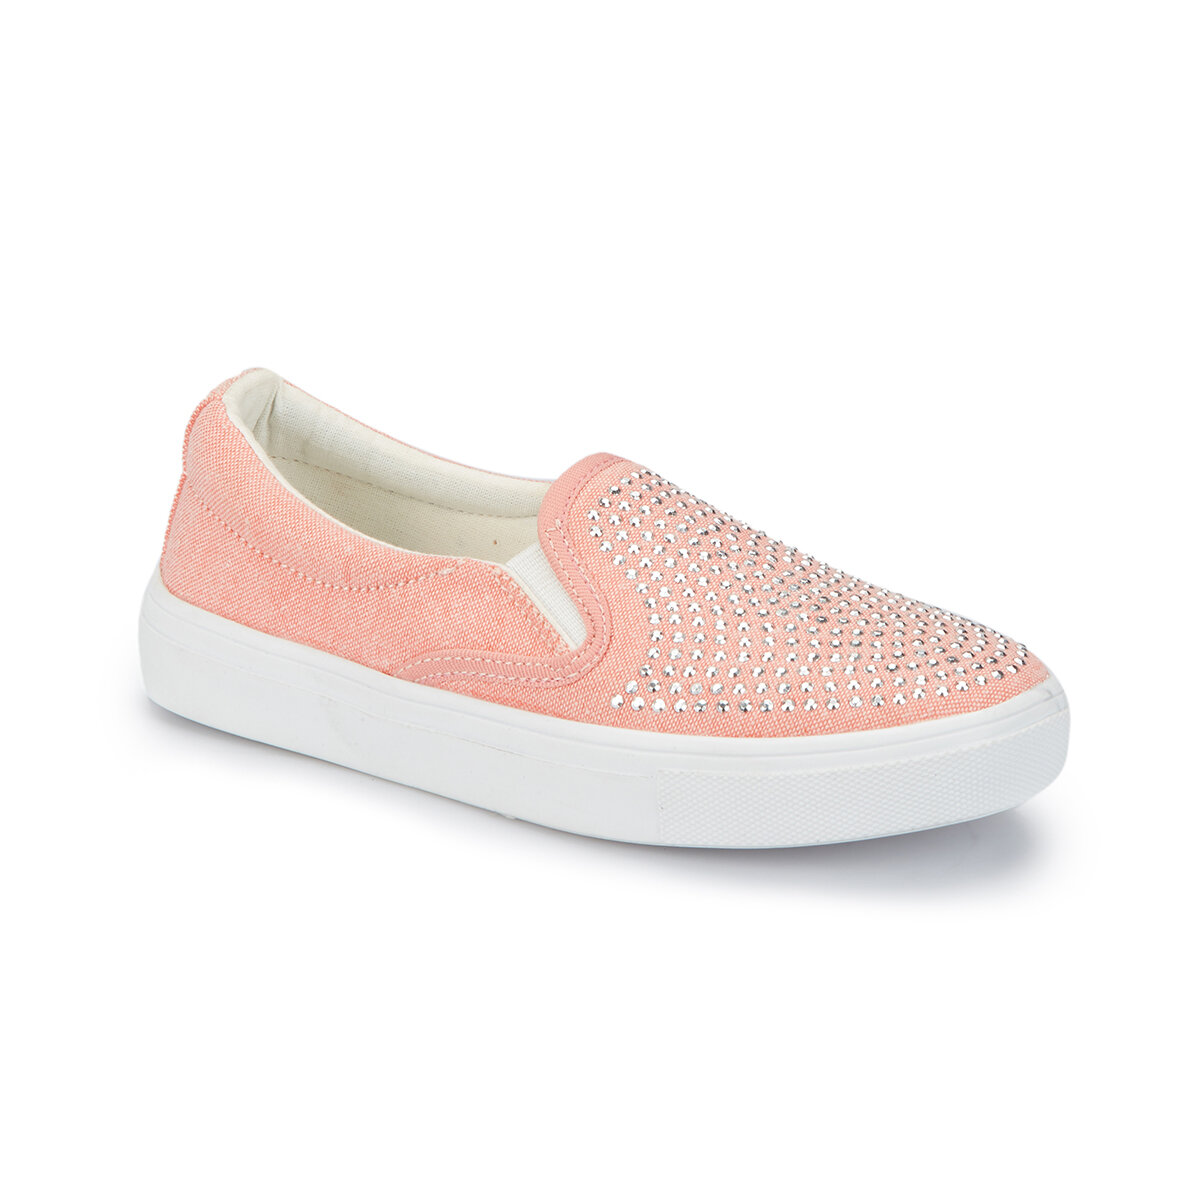 FLO NIEL Salmon Girl Kids Slip On Shoes PINKSTEP